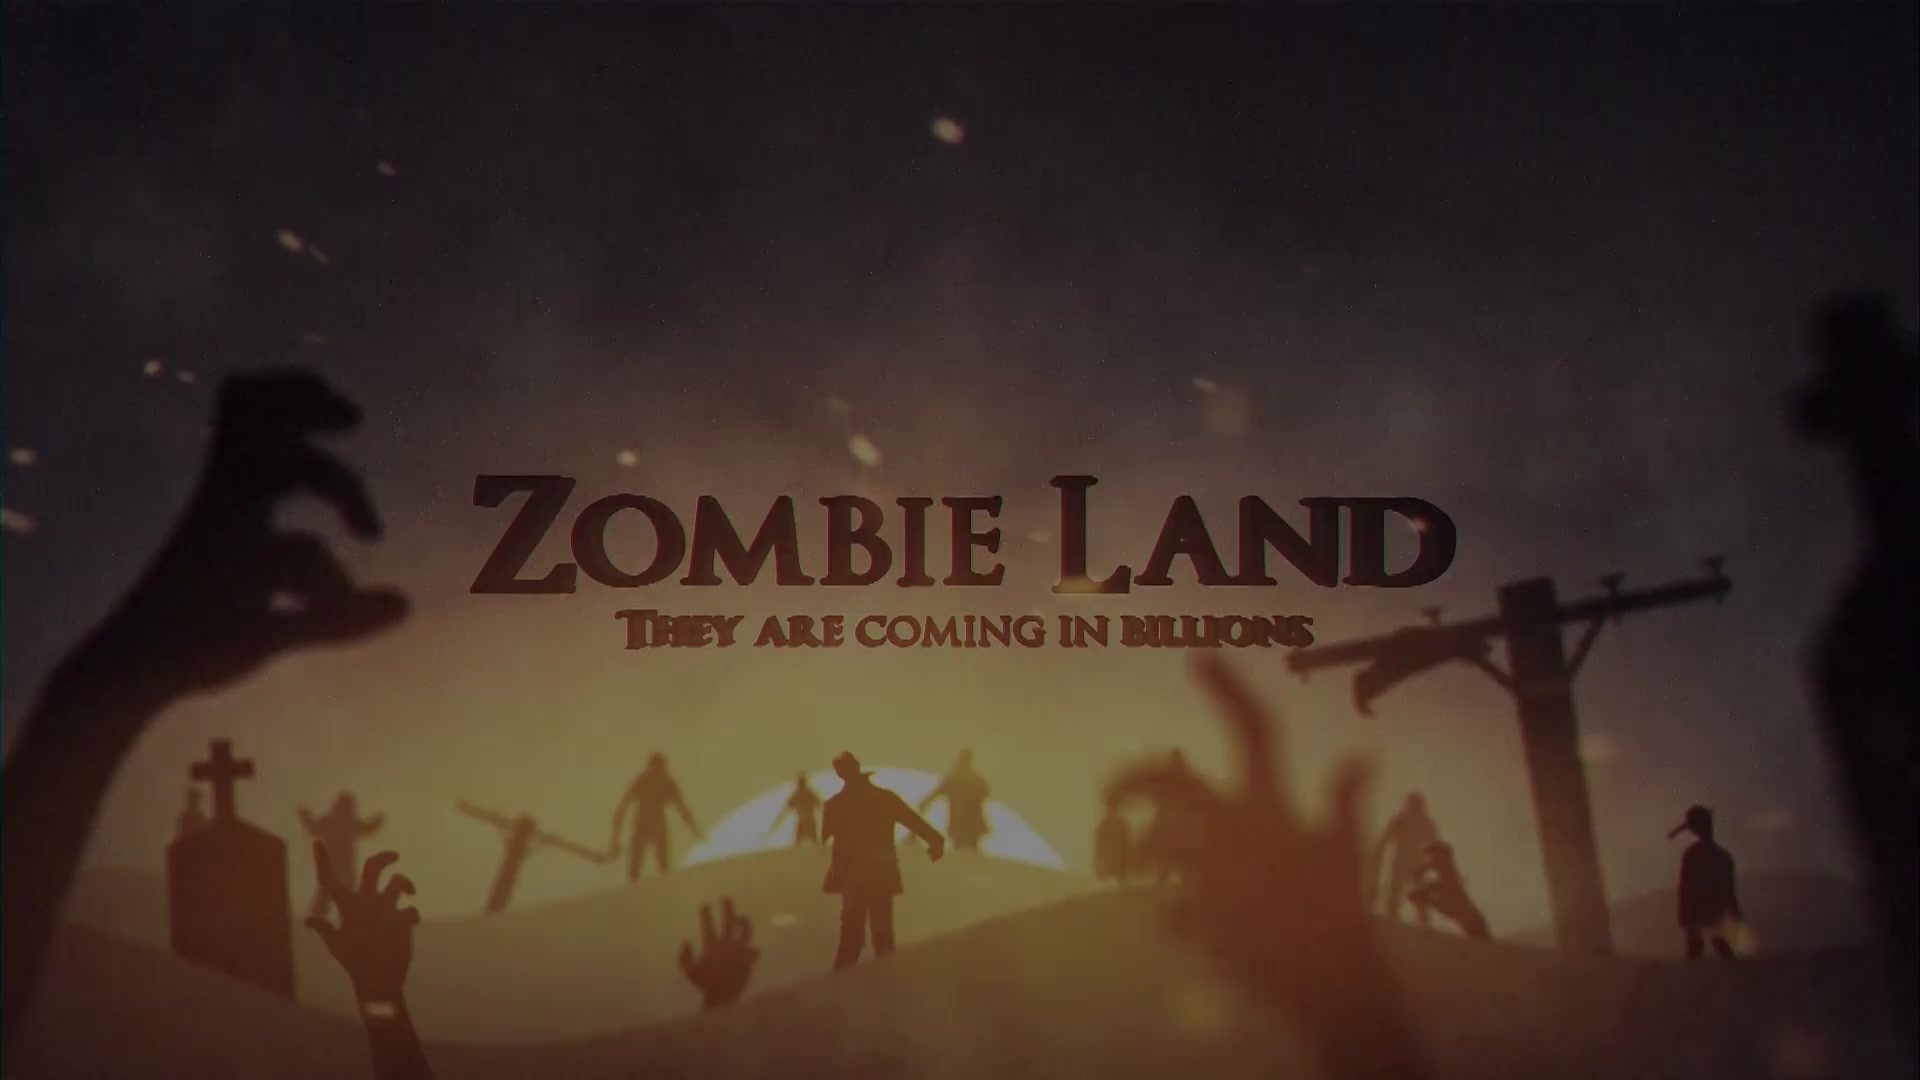 Zombie Land - Download Videohive 22683808